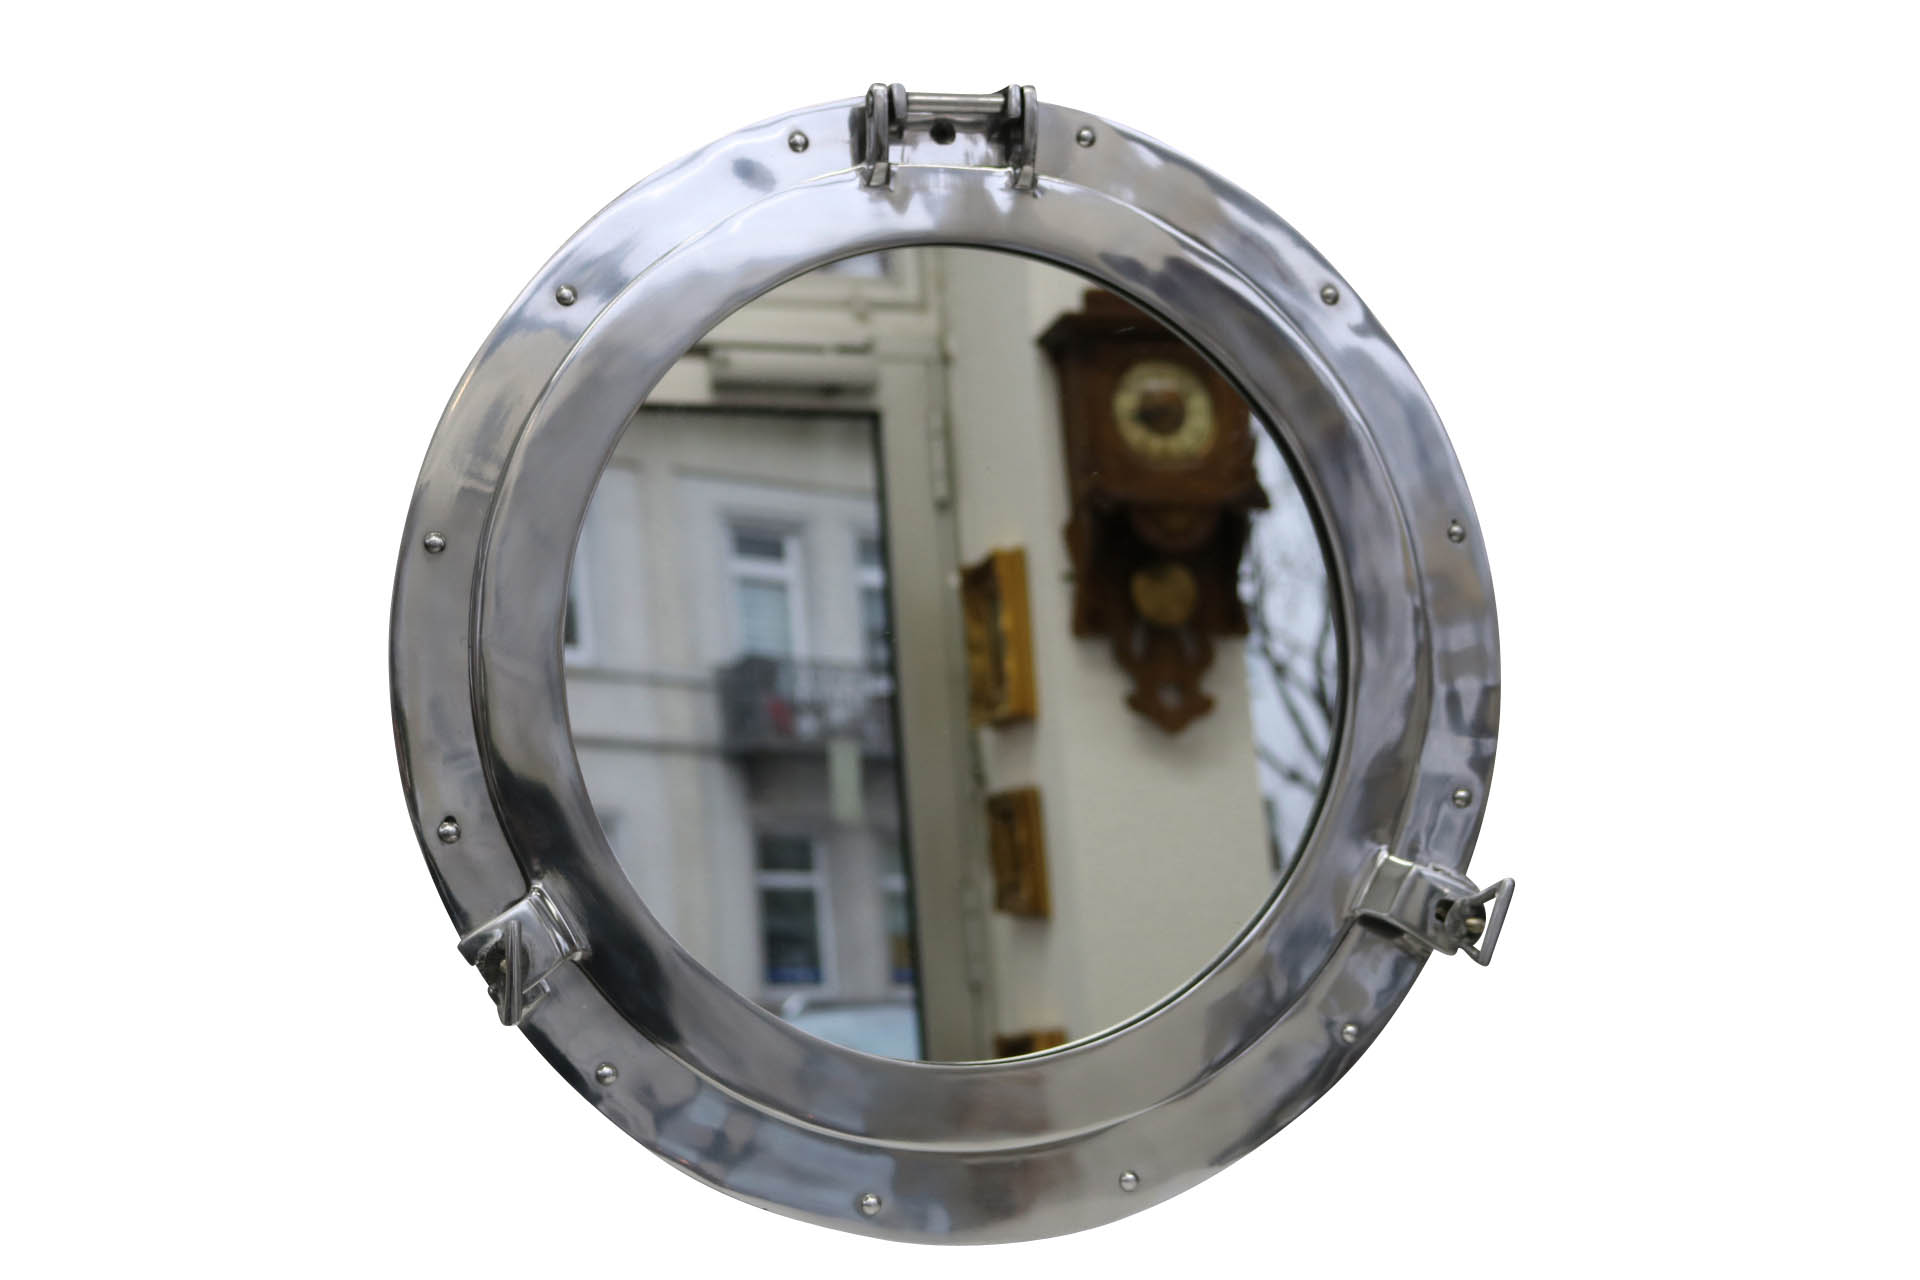 Spiegel Bullauge Porthole With Mirror Open Boat Ship Maritime Decorations 52cm